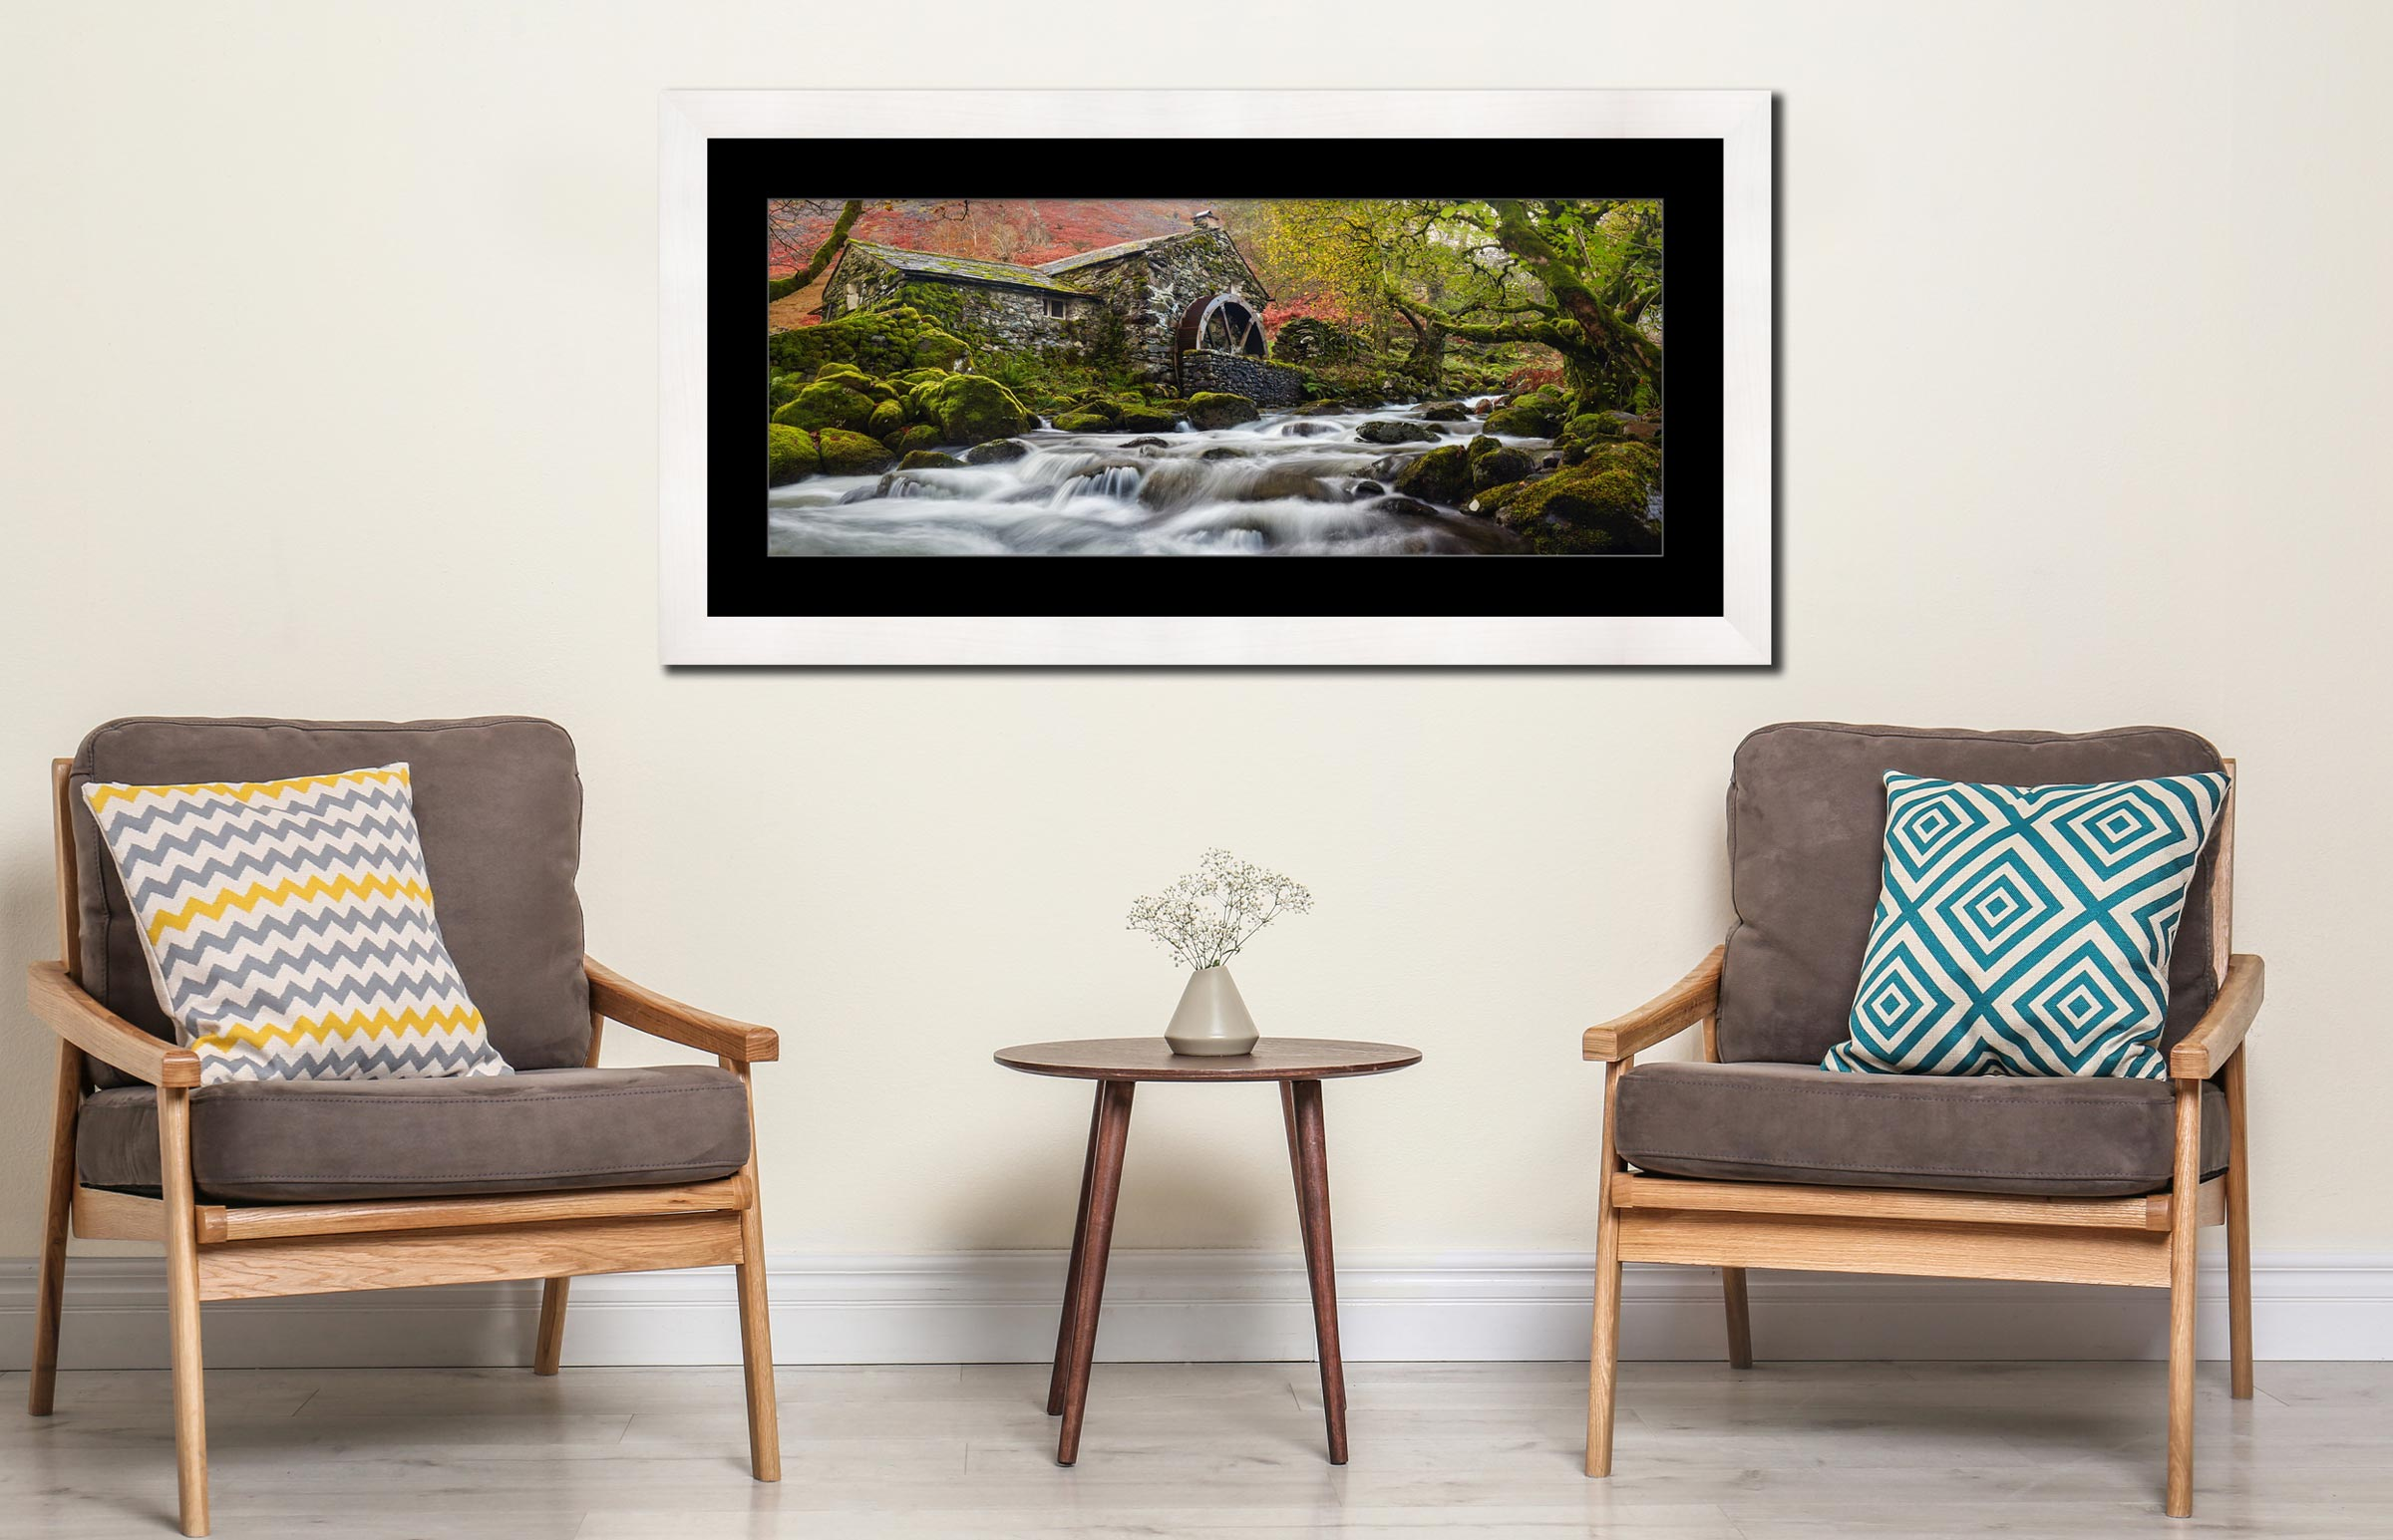 Borrowdale Mill Panorama - Framed Print with Mount on Wall